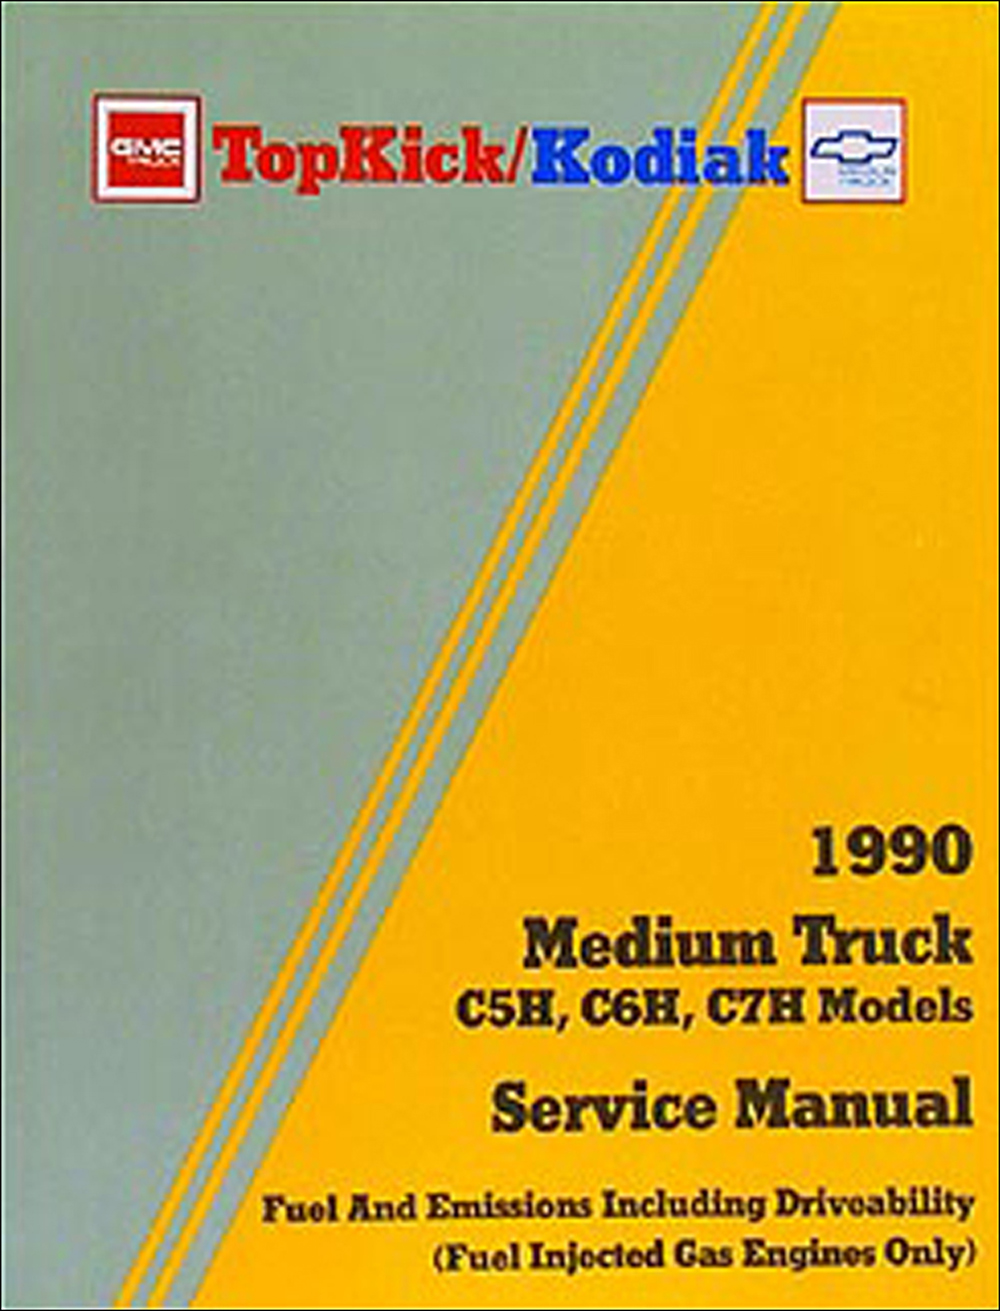 1990 Topkick    Wiring       Diagram    1990 chevy kodiak    gmc    topkick